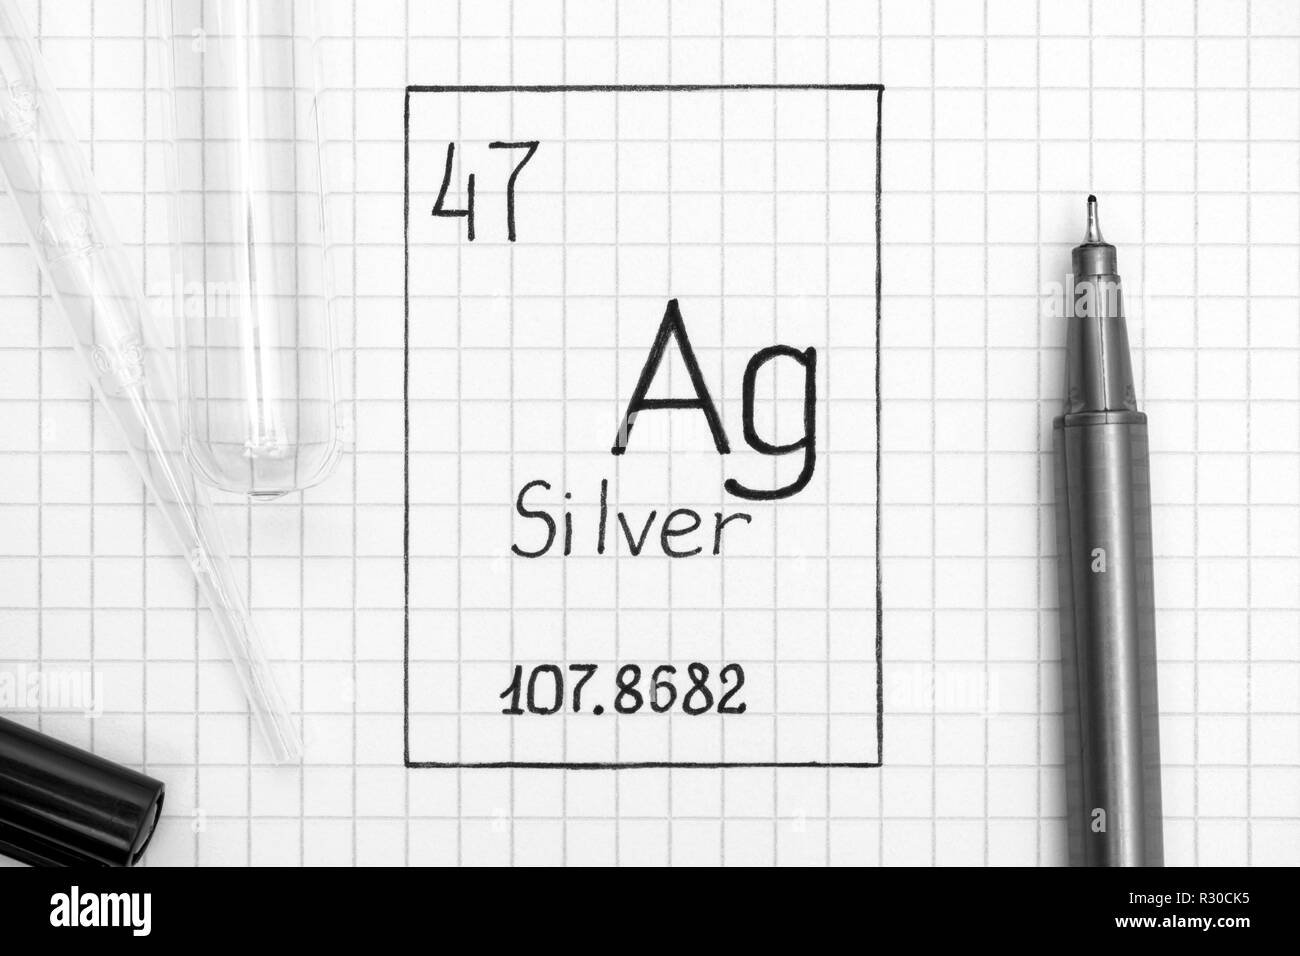 Mendeleev Periodic Table Stock Photos Amp Mendeleev Periodic Table Stock Images